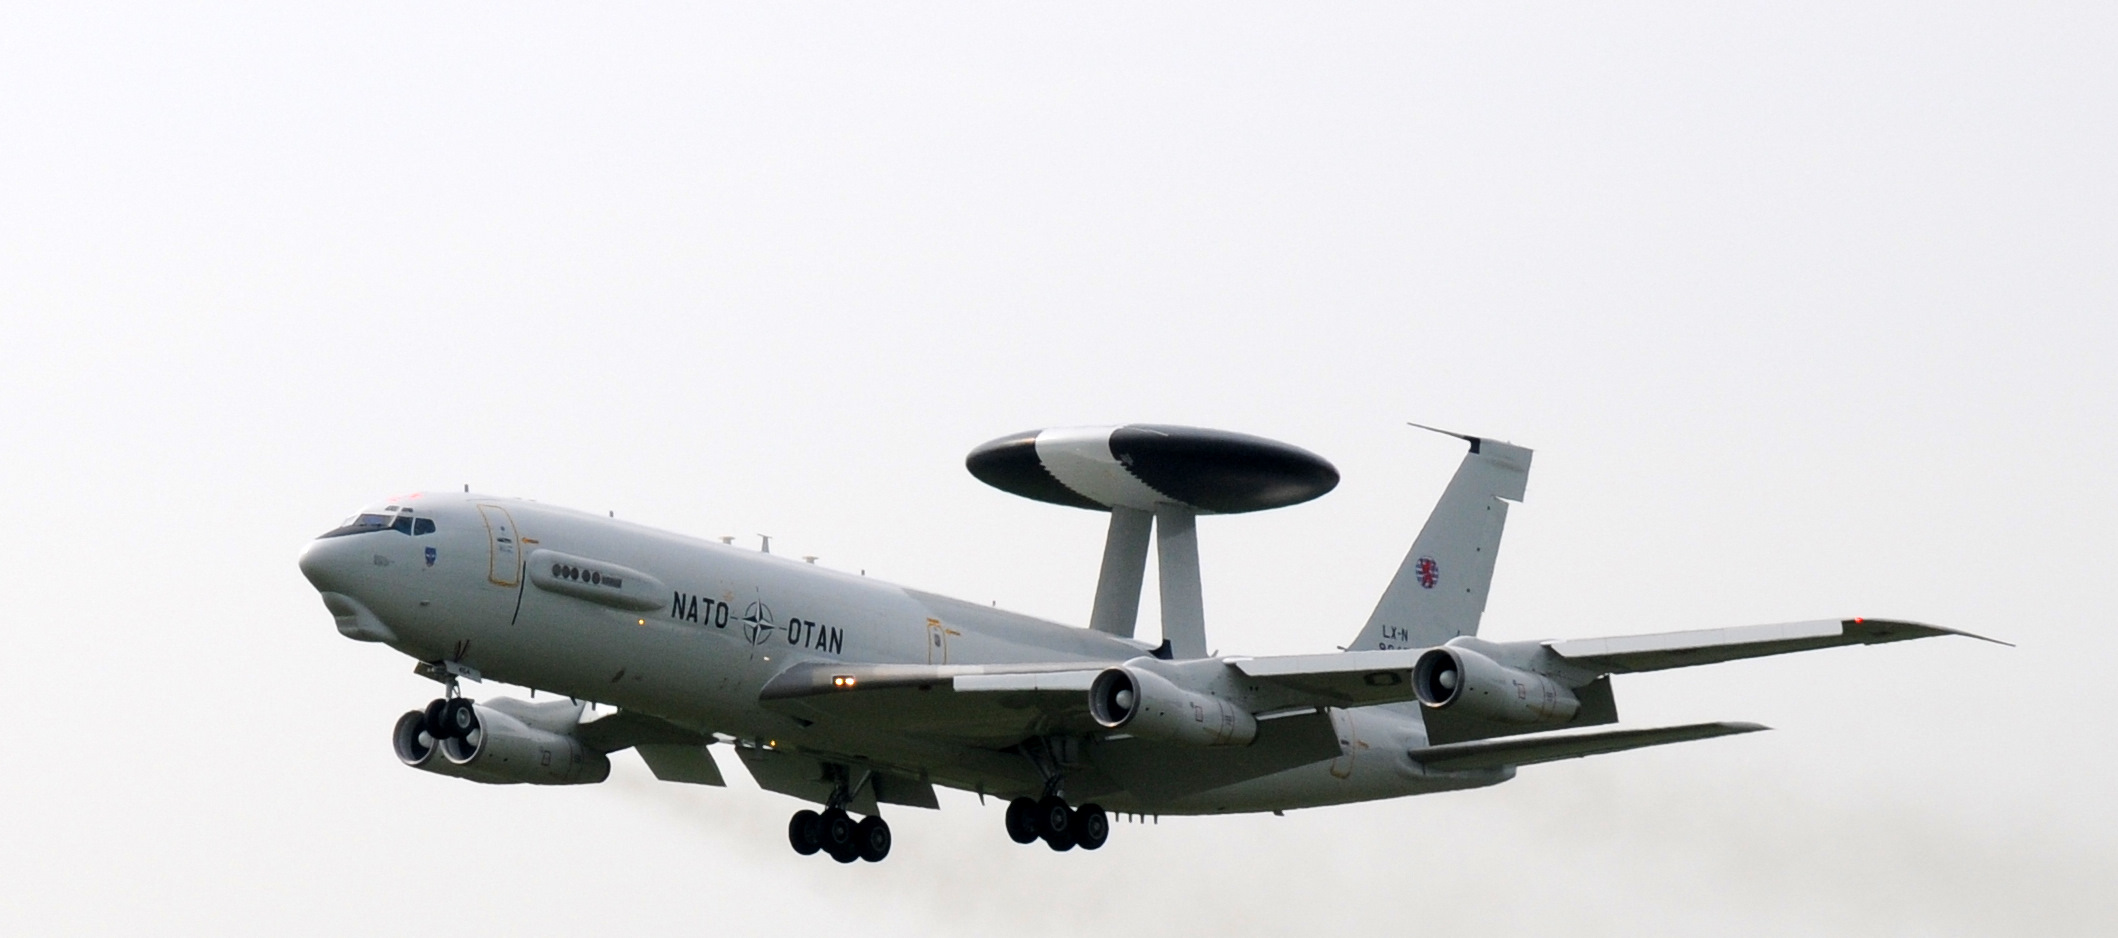 Airborne early warning and control Wikipedia